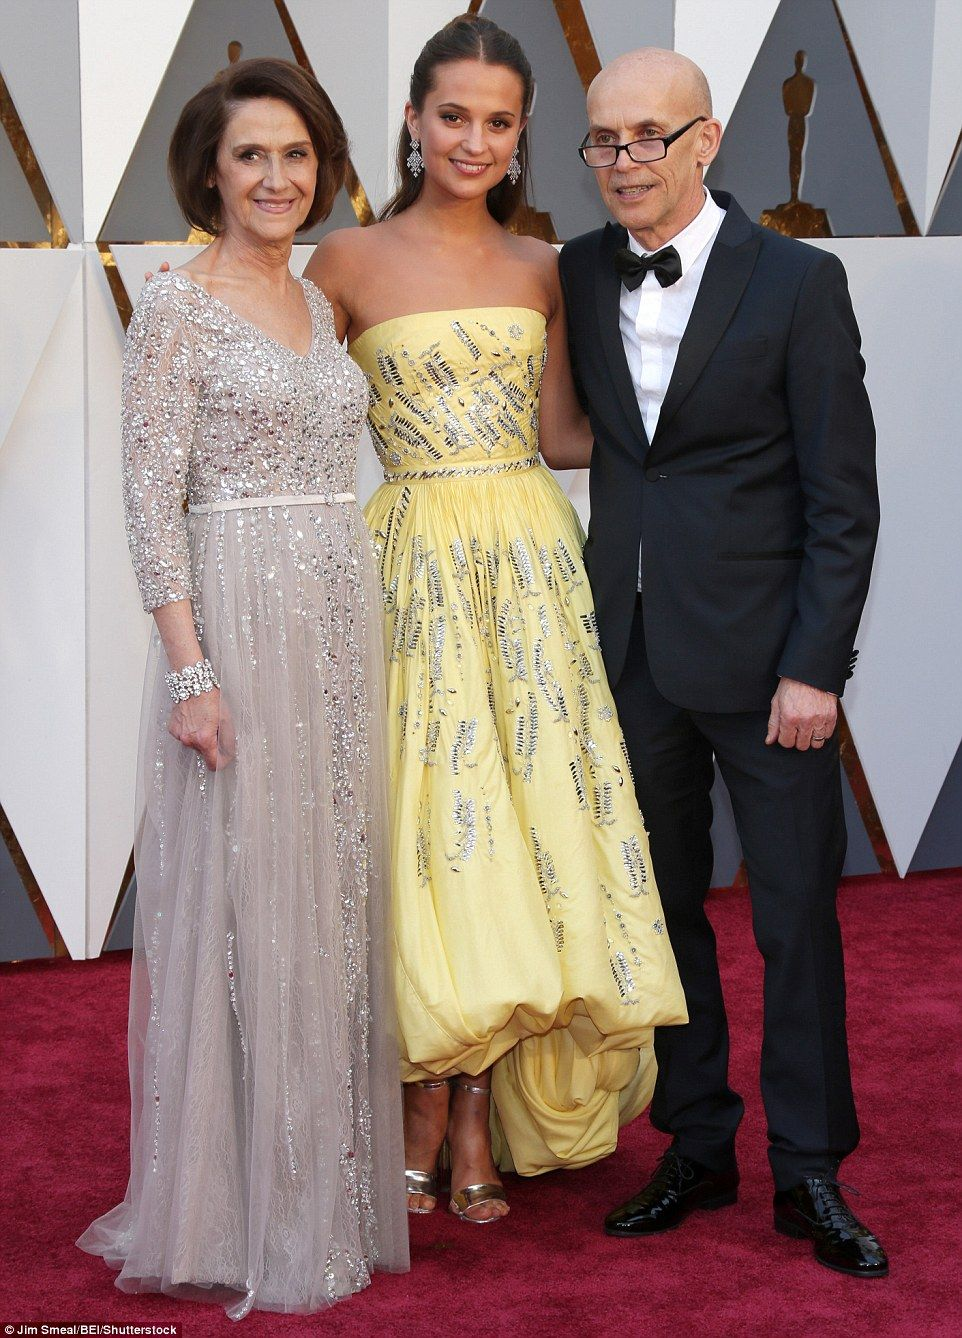 Jennifer Lawrence Brie Larson And Cate Blanchett Wow At Oscars Colorful Gown Academy Awards Red Carpet Glamorous Outfits